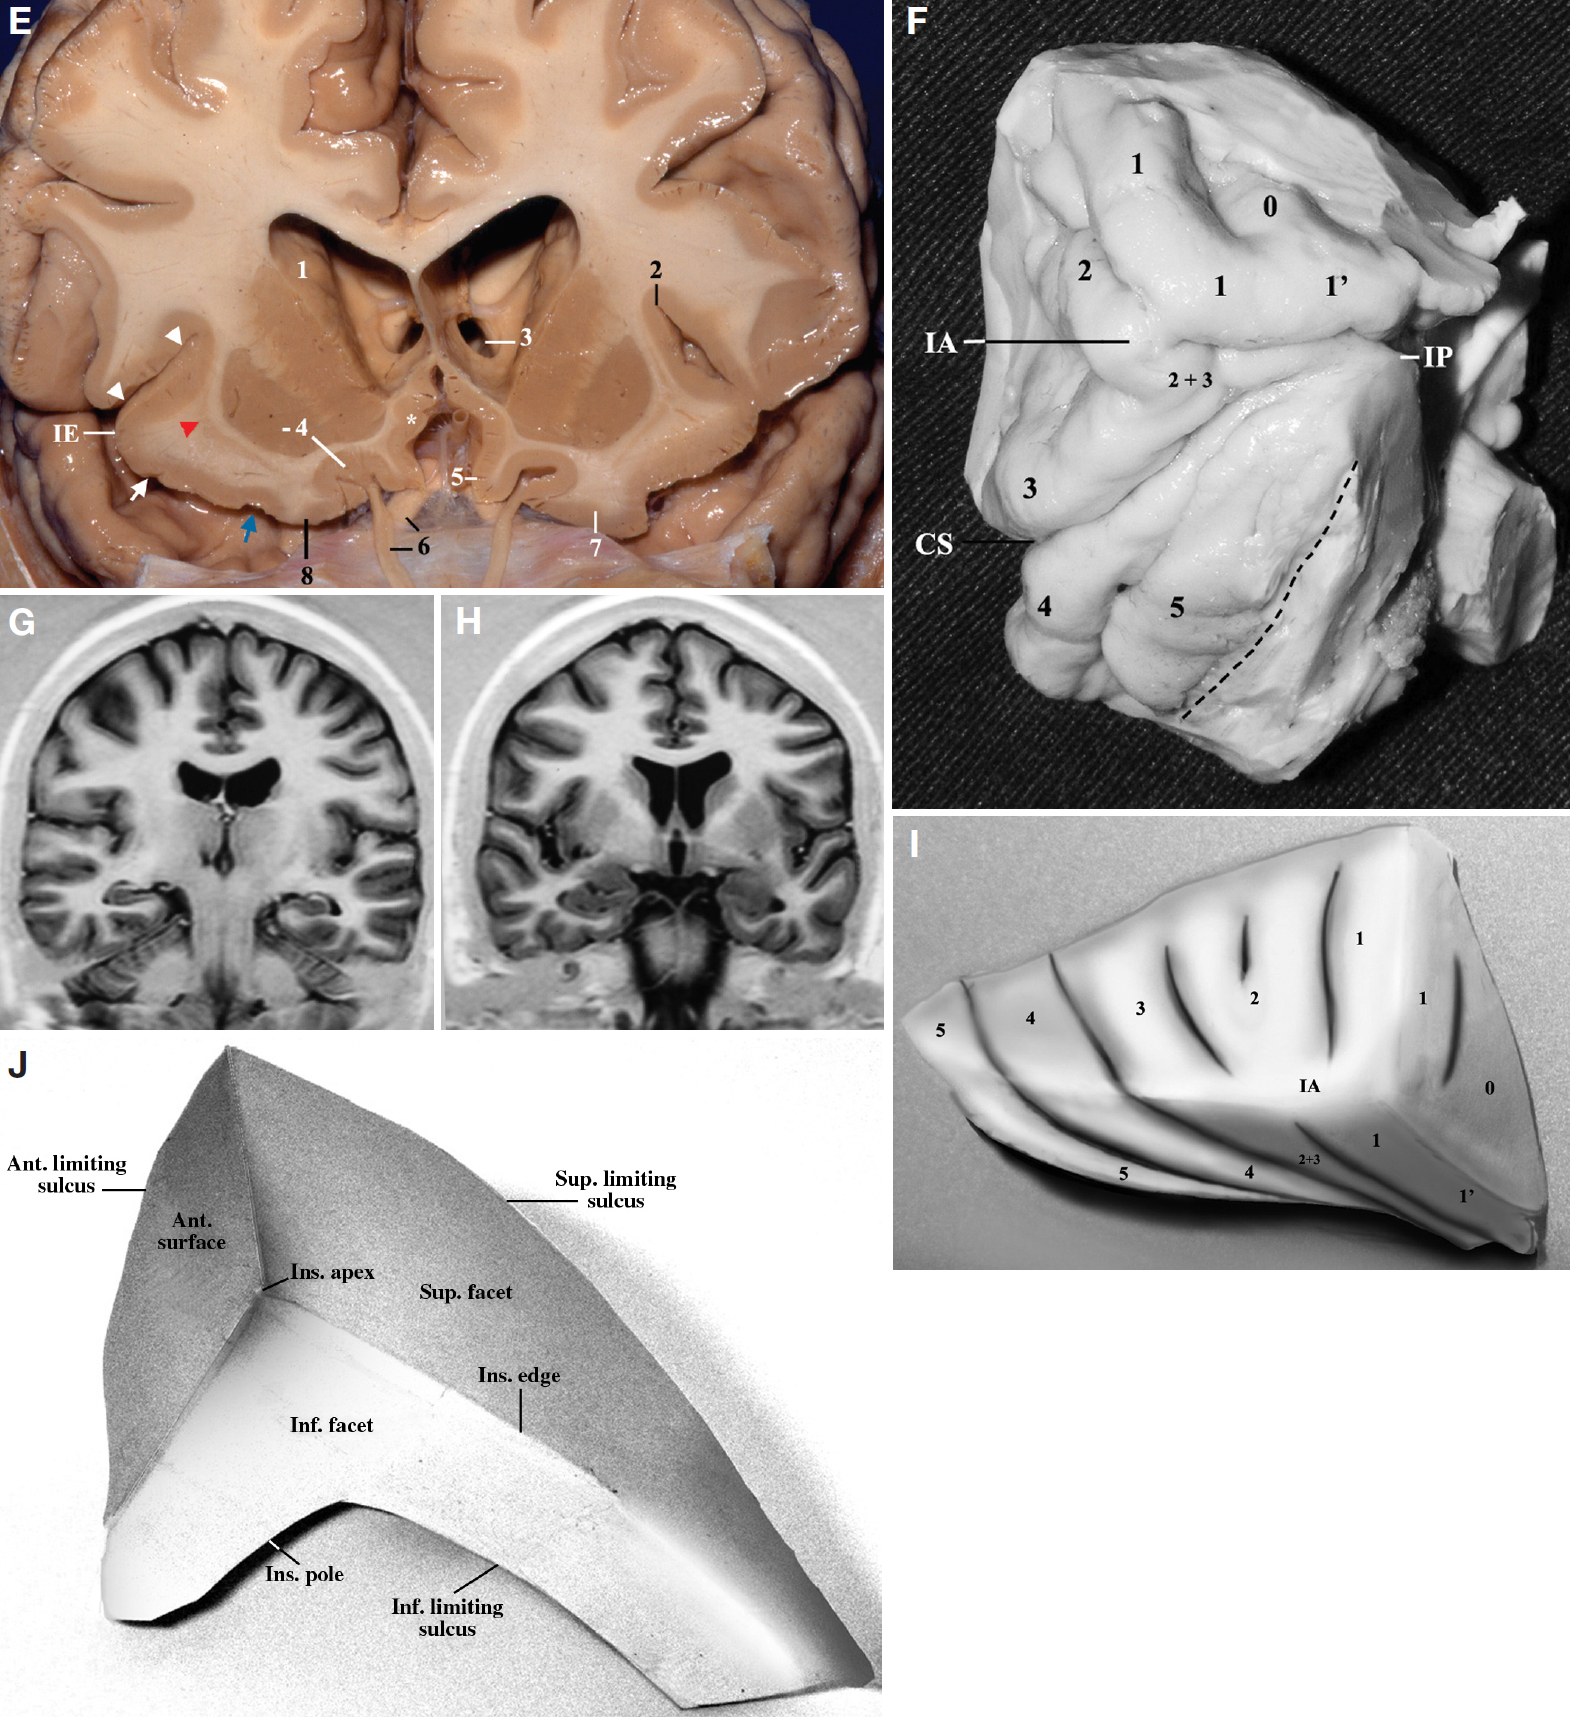 Figure 6 (E–J). E, frontal view. A coronal cut has been made at the anterior portion of the insula at the level of the optic nerves. In the anterior portion of the insula, the superolateral and the inferolateral facets, as well as the insular edge, are more evident. In the right hemisphere, the coronal cut includes the extension of the anterior short gyrus in the inferolateral facet, the transverse gyrus of Eberstaller, and its junction with the posteromedial orbital lobule (blue arrow). In the left hemisphere, a coronal cut has been made more anteriorly and included the posterior orbital gyrus. At this level, the head of the caudate is located immediately above the gray matter overlying the olfactory sulcus and is separated from the latter by a thin layer of white matter. The lentiform nucleus is located above the posteromedial orbital lobule and above the transverse gyrus of Eberstaller and is separated from the latter by a layer of white matter interposed by the claustrum. 1, head of the caudate nucleus; 2, superior limiting sulcus; 3, foramen of Monro (left); 4, lentiform nucleus and olfactory sulcus; 5, rectus gyrus; 6, optic nerve and olfactory tract; 7, posterior orbital gyrus; 8, posteromedial orbital lobule. The arrowheads indicate superior insular cleft and superolateral facet of insula. The white arrow indicates transverse gyrus of Eberstaller. The blue arrow indicates junction between the transverse gyrus and the posteromedial orbital lobule. IE, insular edge. Asterisk, paraolfactory gyrus. The red arrowhead indicates claustrum. The head and body of the caudate nucleus are located more superiorly than the superior limiting sulcus of the insula. G, coronal MRI scan of the posterior portion of the insula. H, coronal MRI scan of the middle portion of the insula. F, laterobasal view of the right insula. 0, accessory gyrus; 1', transverse gyrus of Eberstaller; 1, anterior short gyrus; 2, middle short gyrus; 3, posterior short gyrus; 2 + 3, junction between th